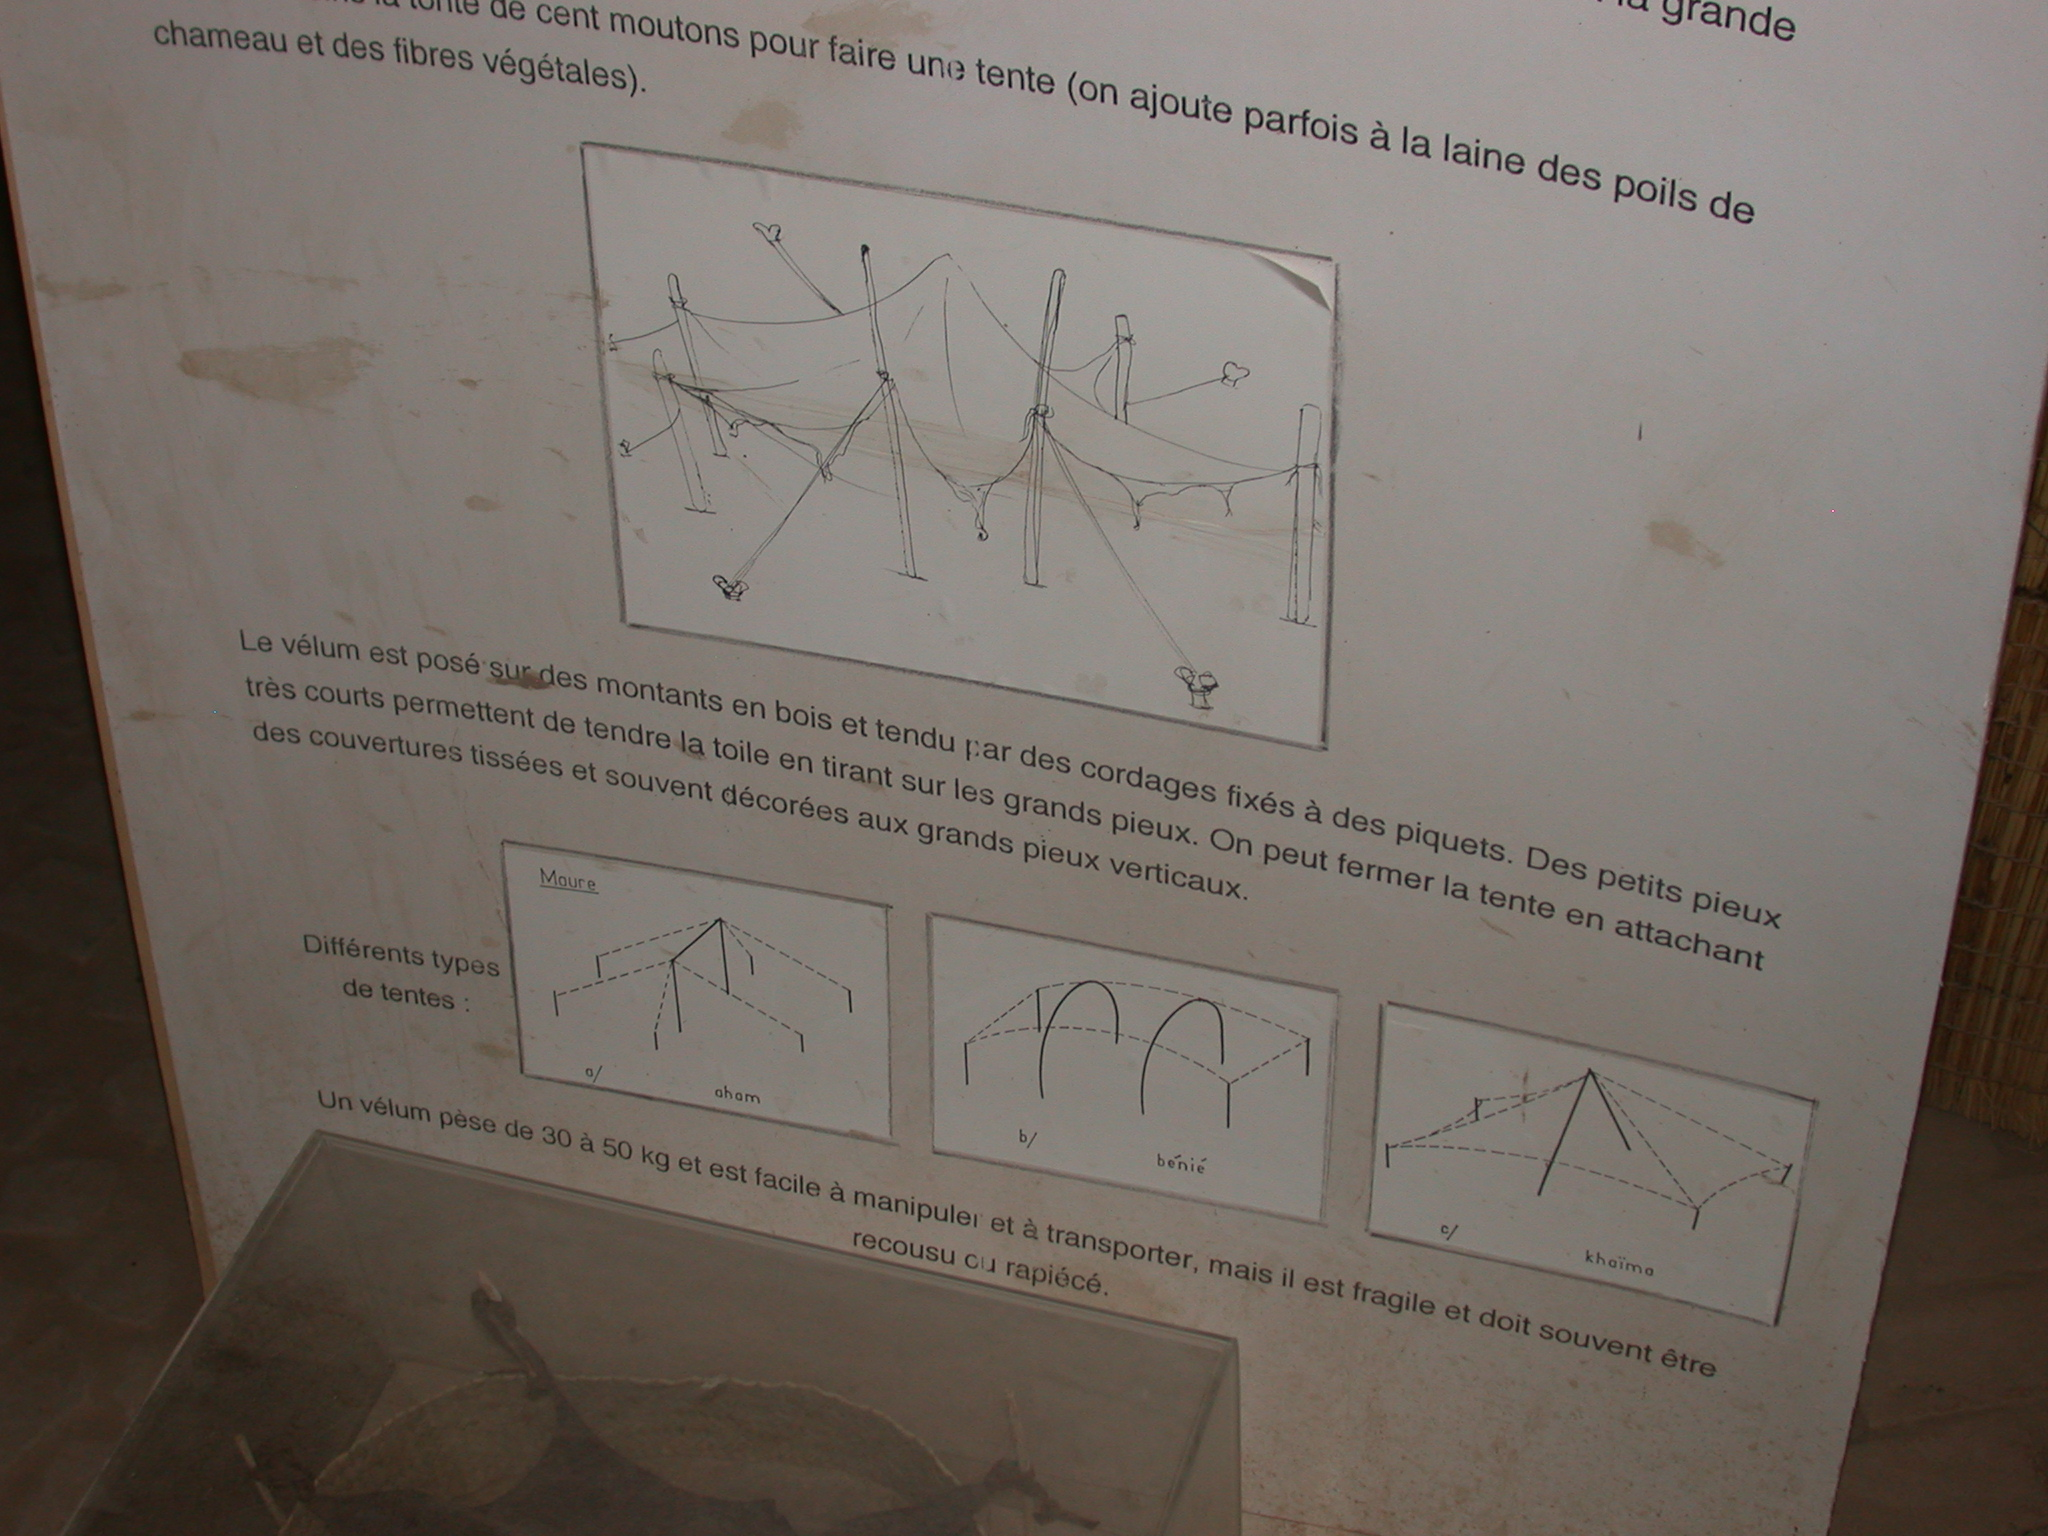 Moorish Tent Description, Part II, Timbuktu Ethnological Museum, Timbuktu, Mali